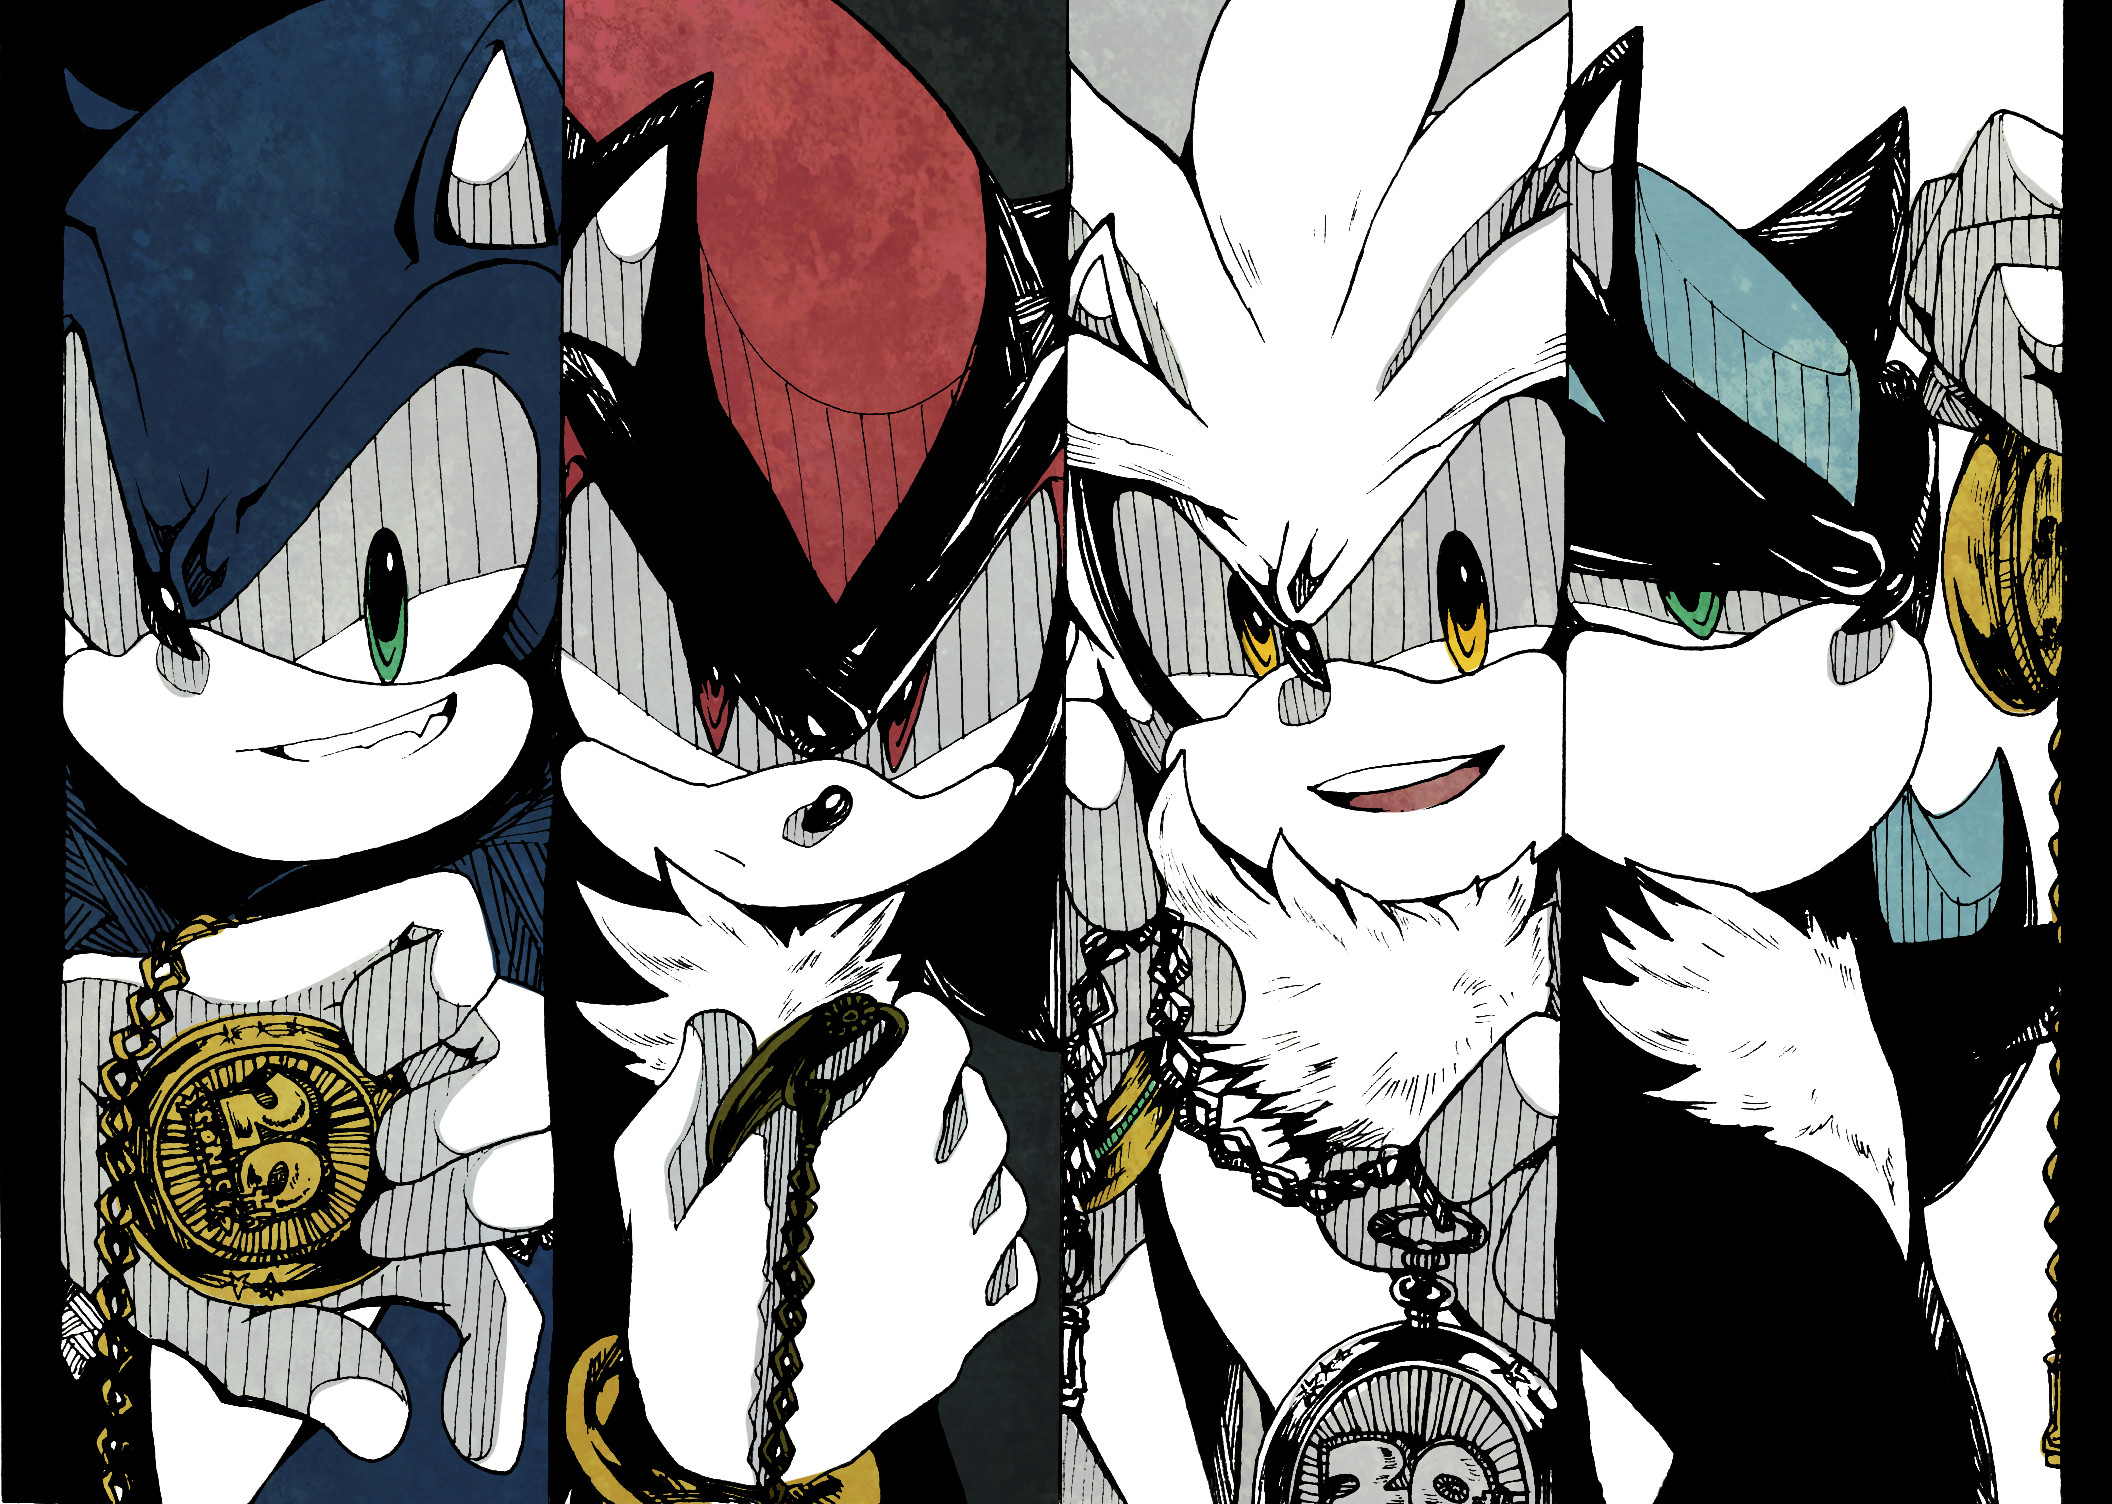 silver the hedgehog – Google Search